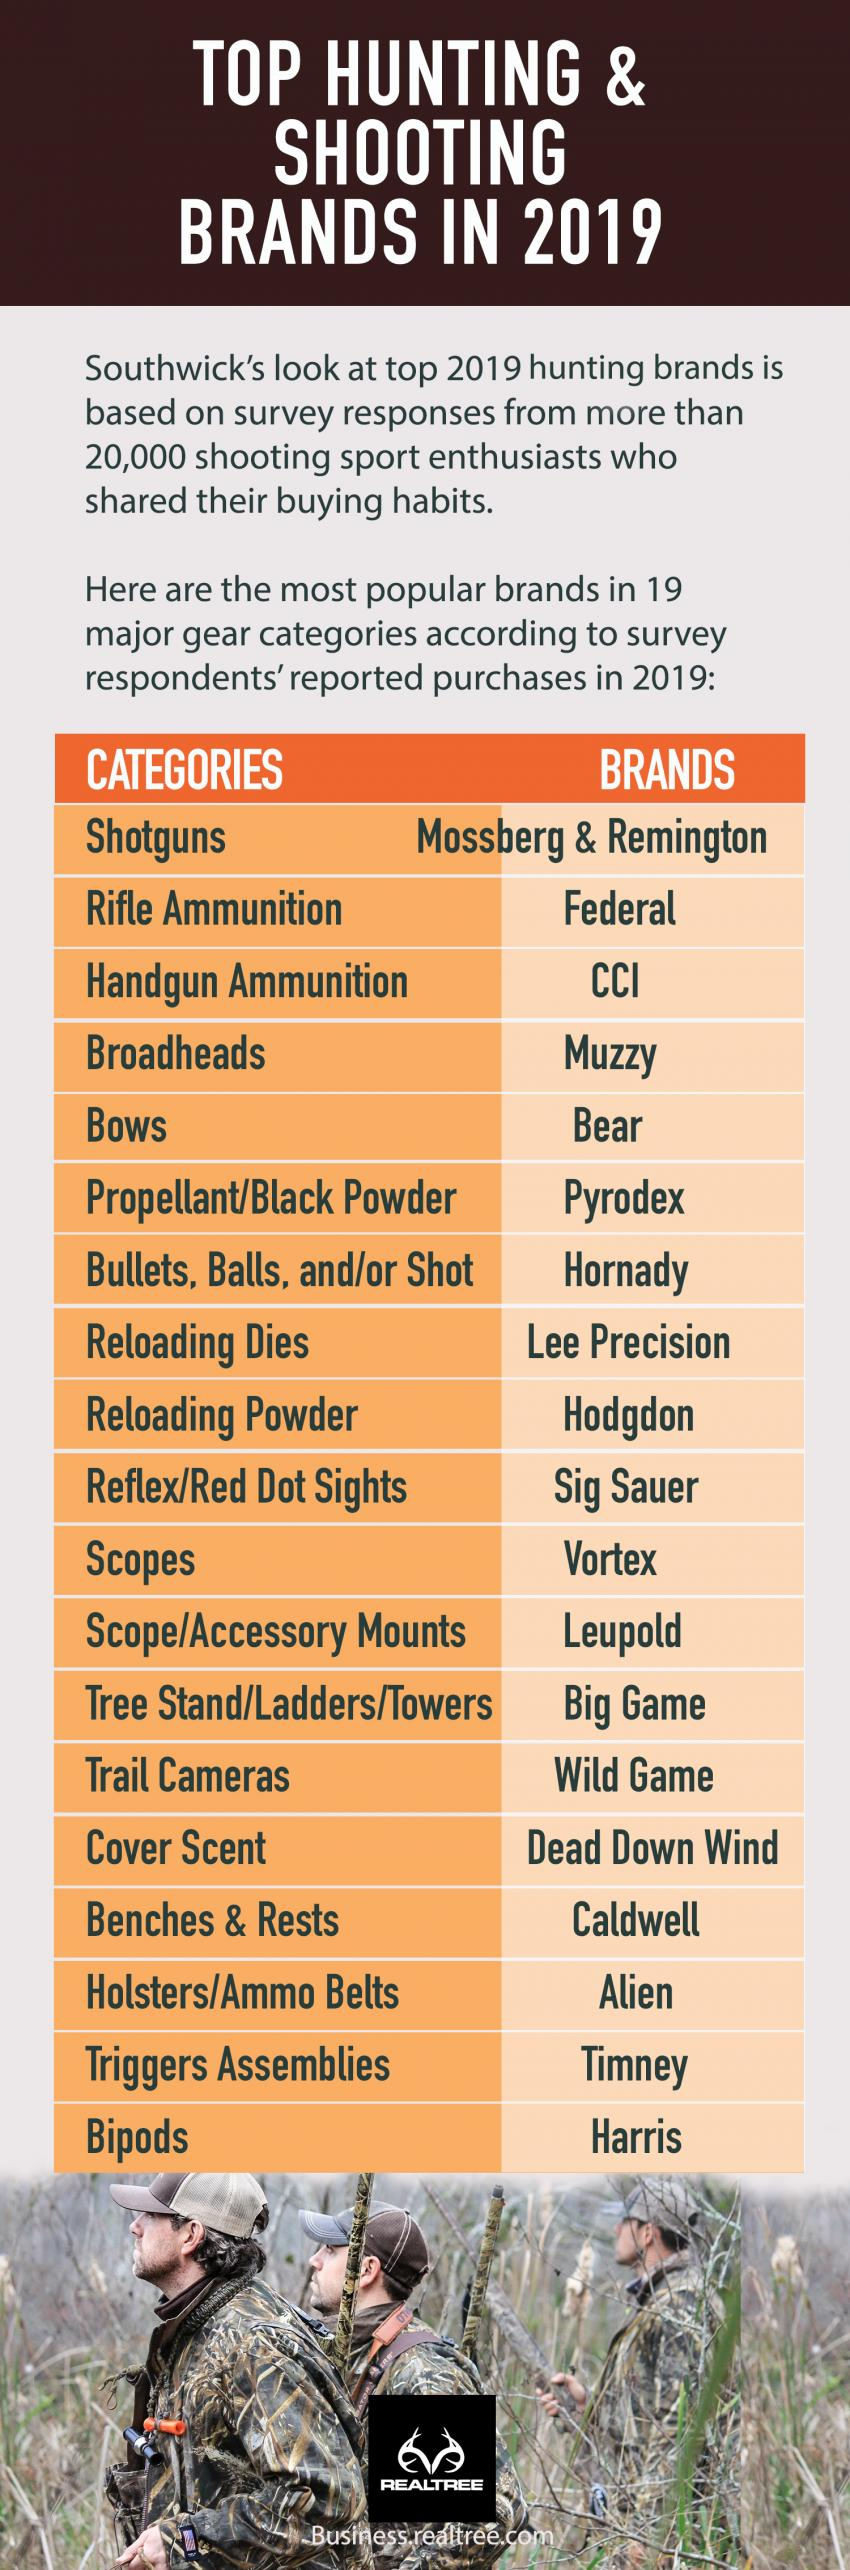 Top hunting and shooting brands in 2019